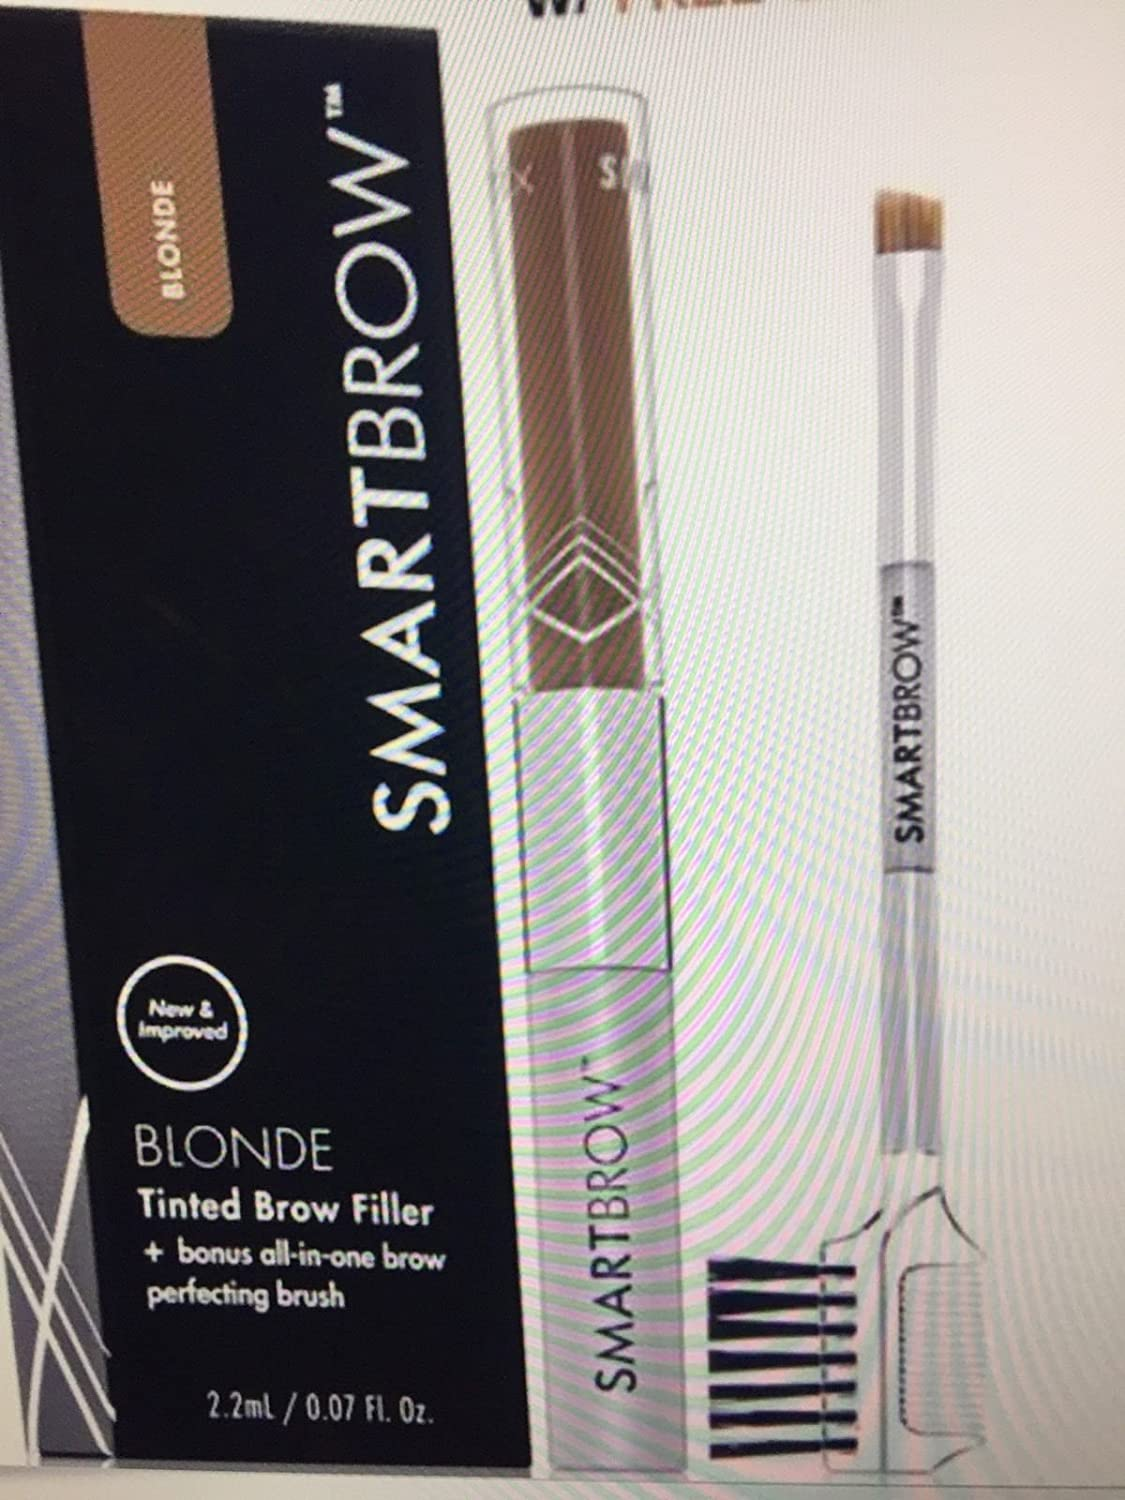 Amazon Smartbrow Blonde Tinted Eyebrow Eye Brow Filler With